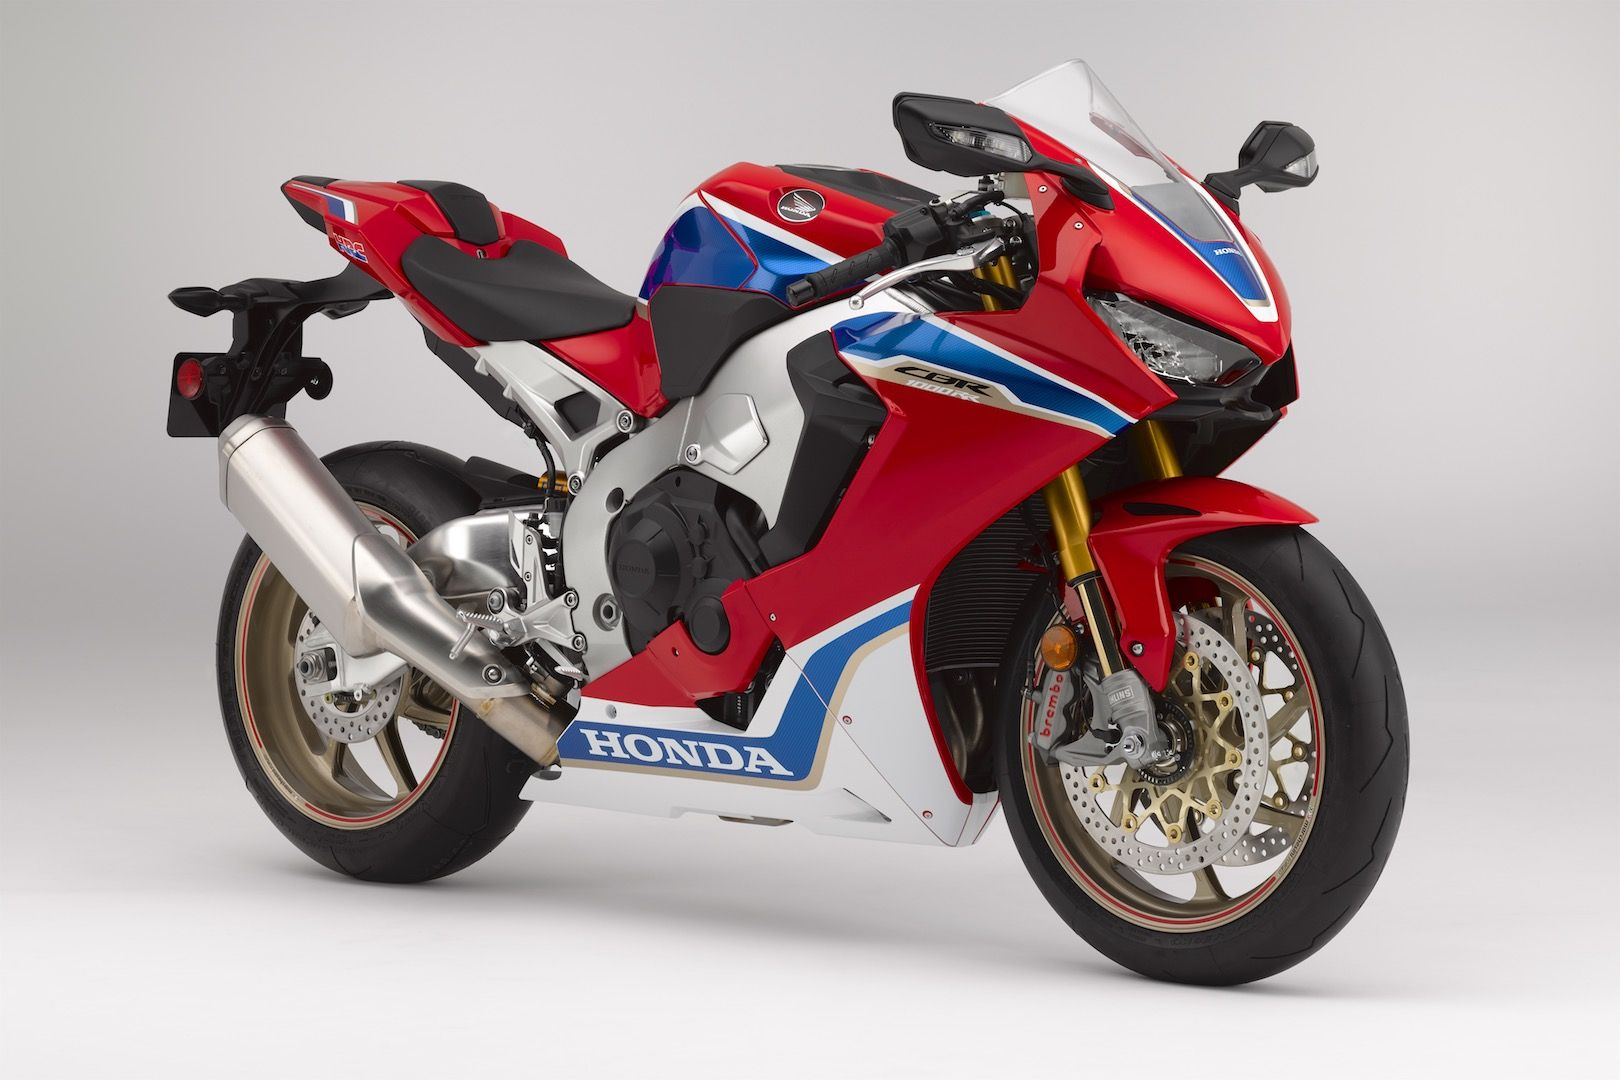 2017 honda cbr1000rr sp and sp2 first look 18 fast facts